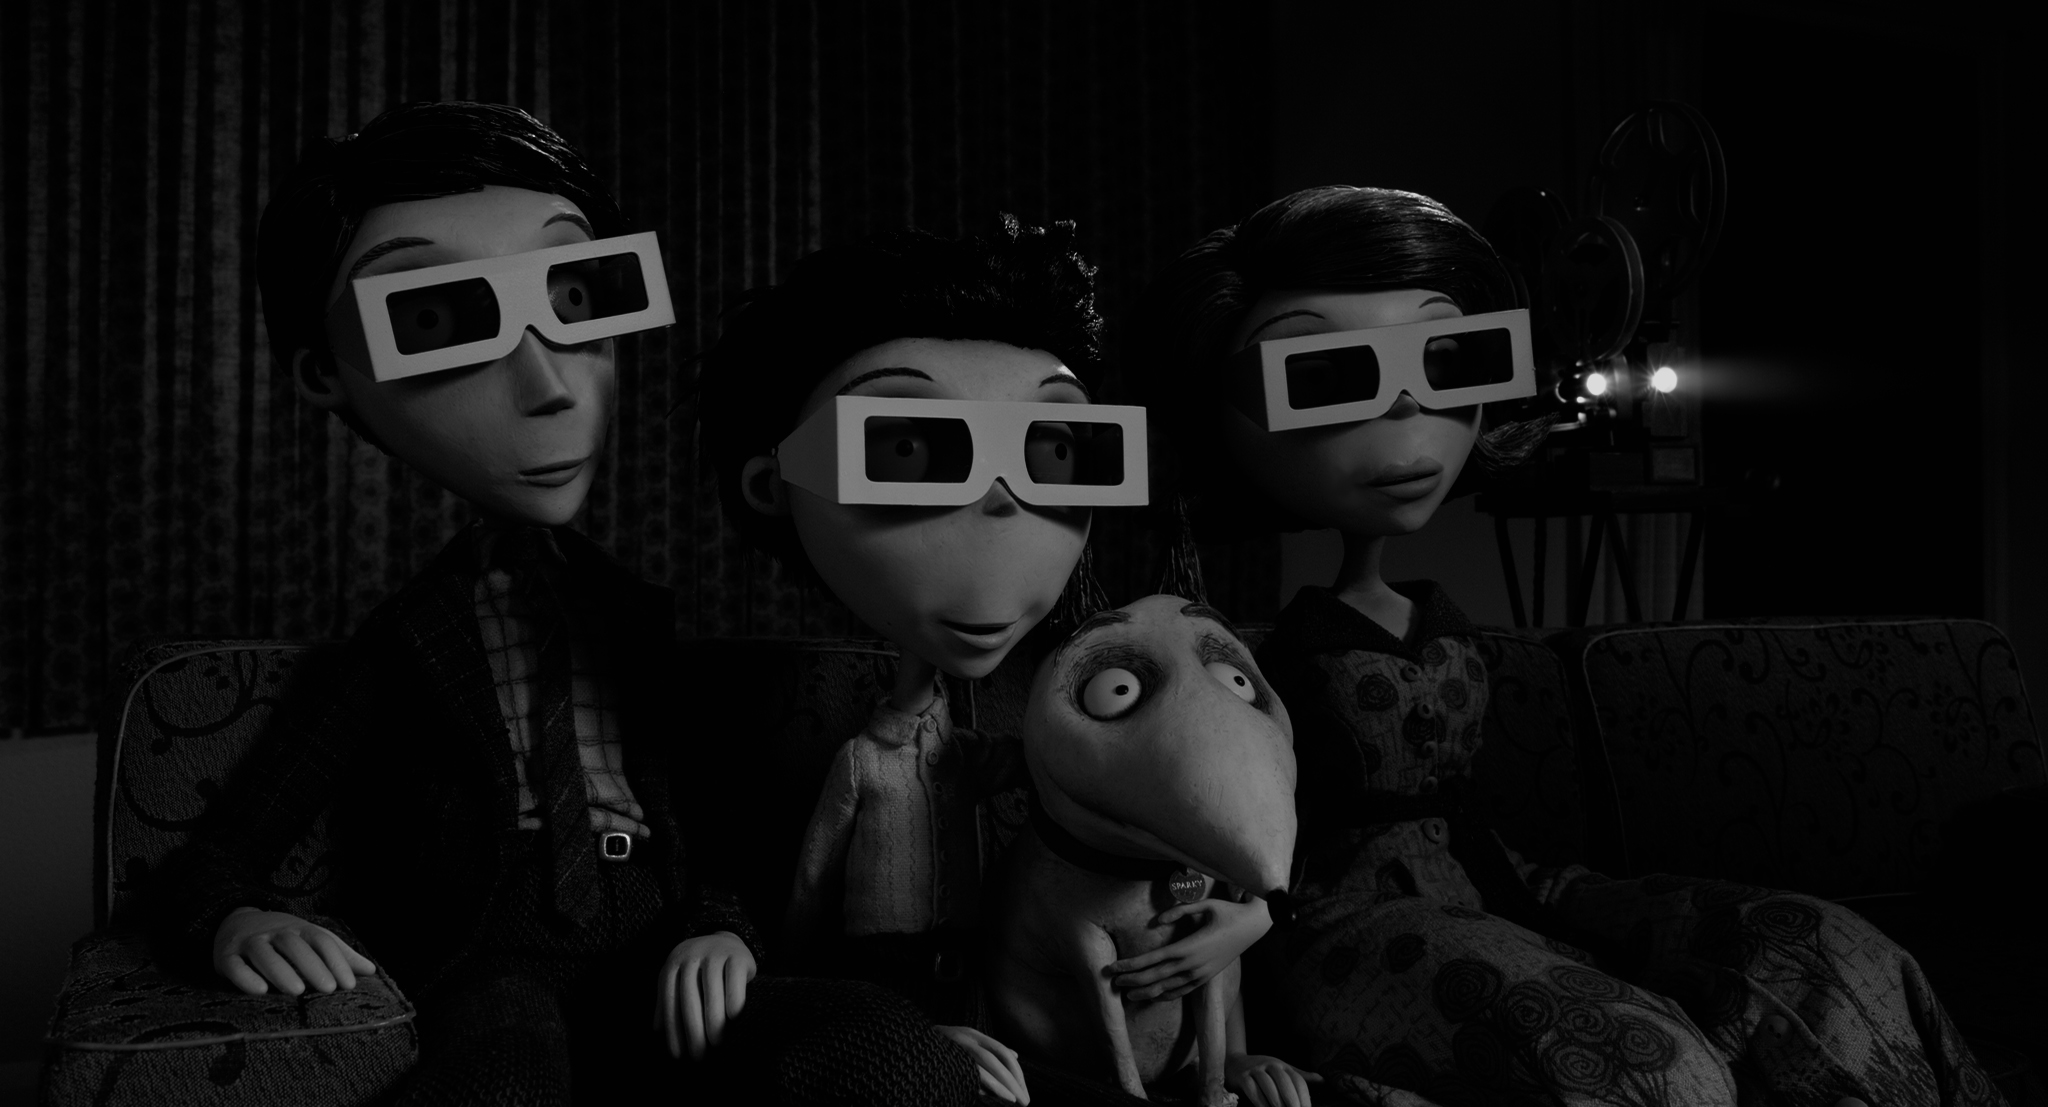 Frankenweenie screen cap